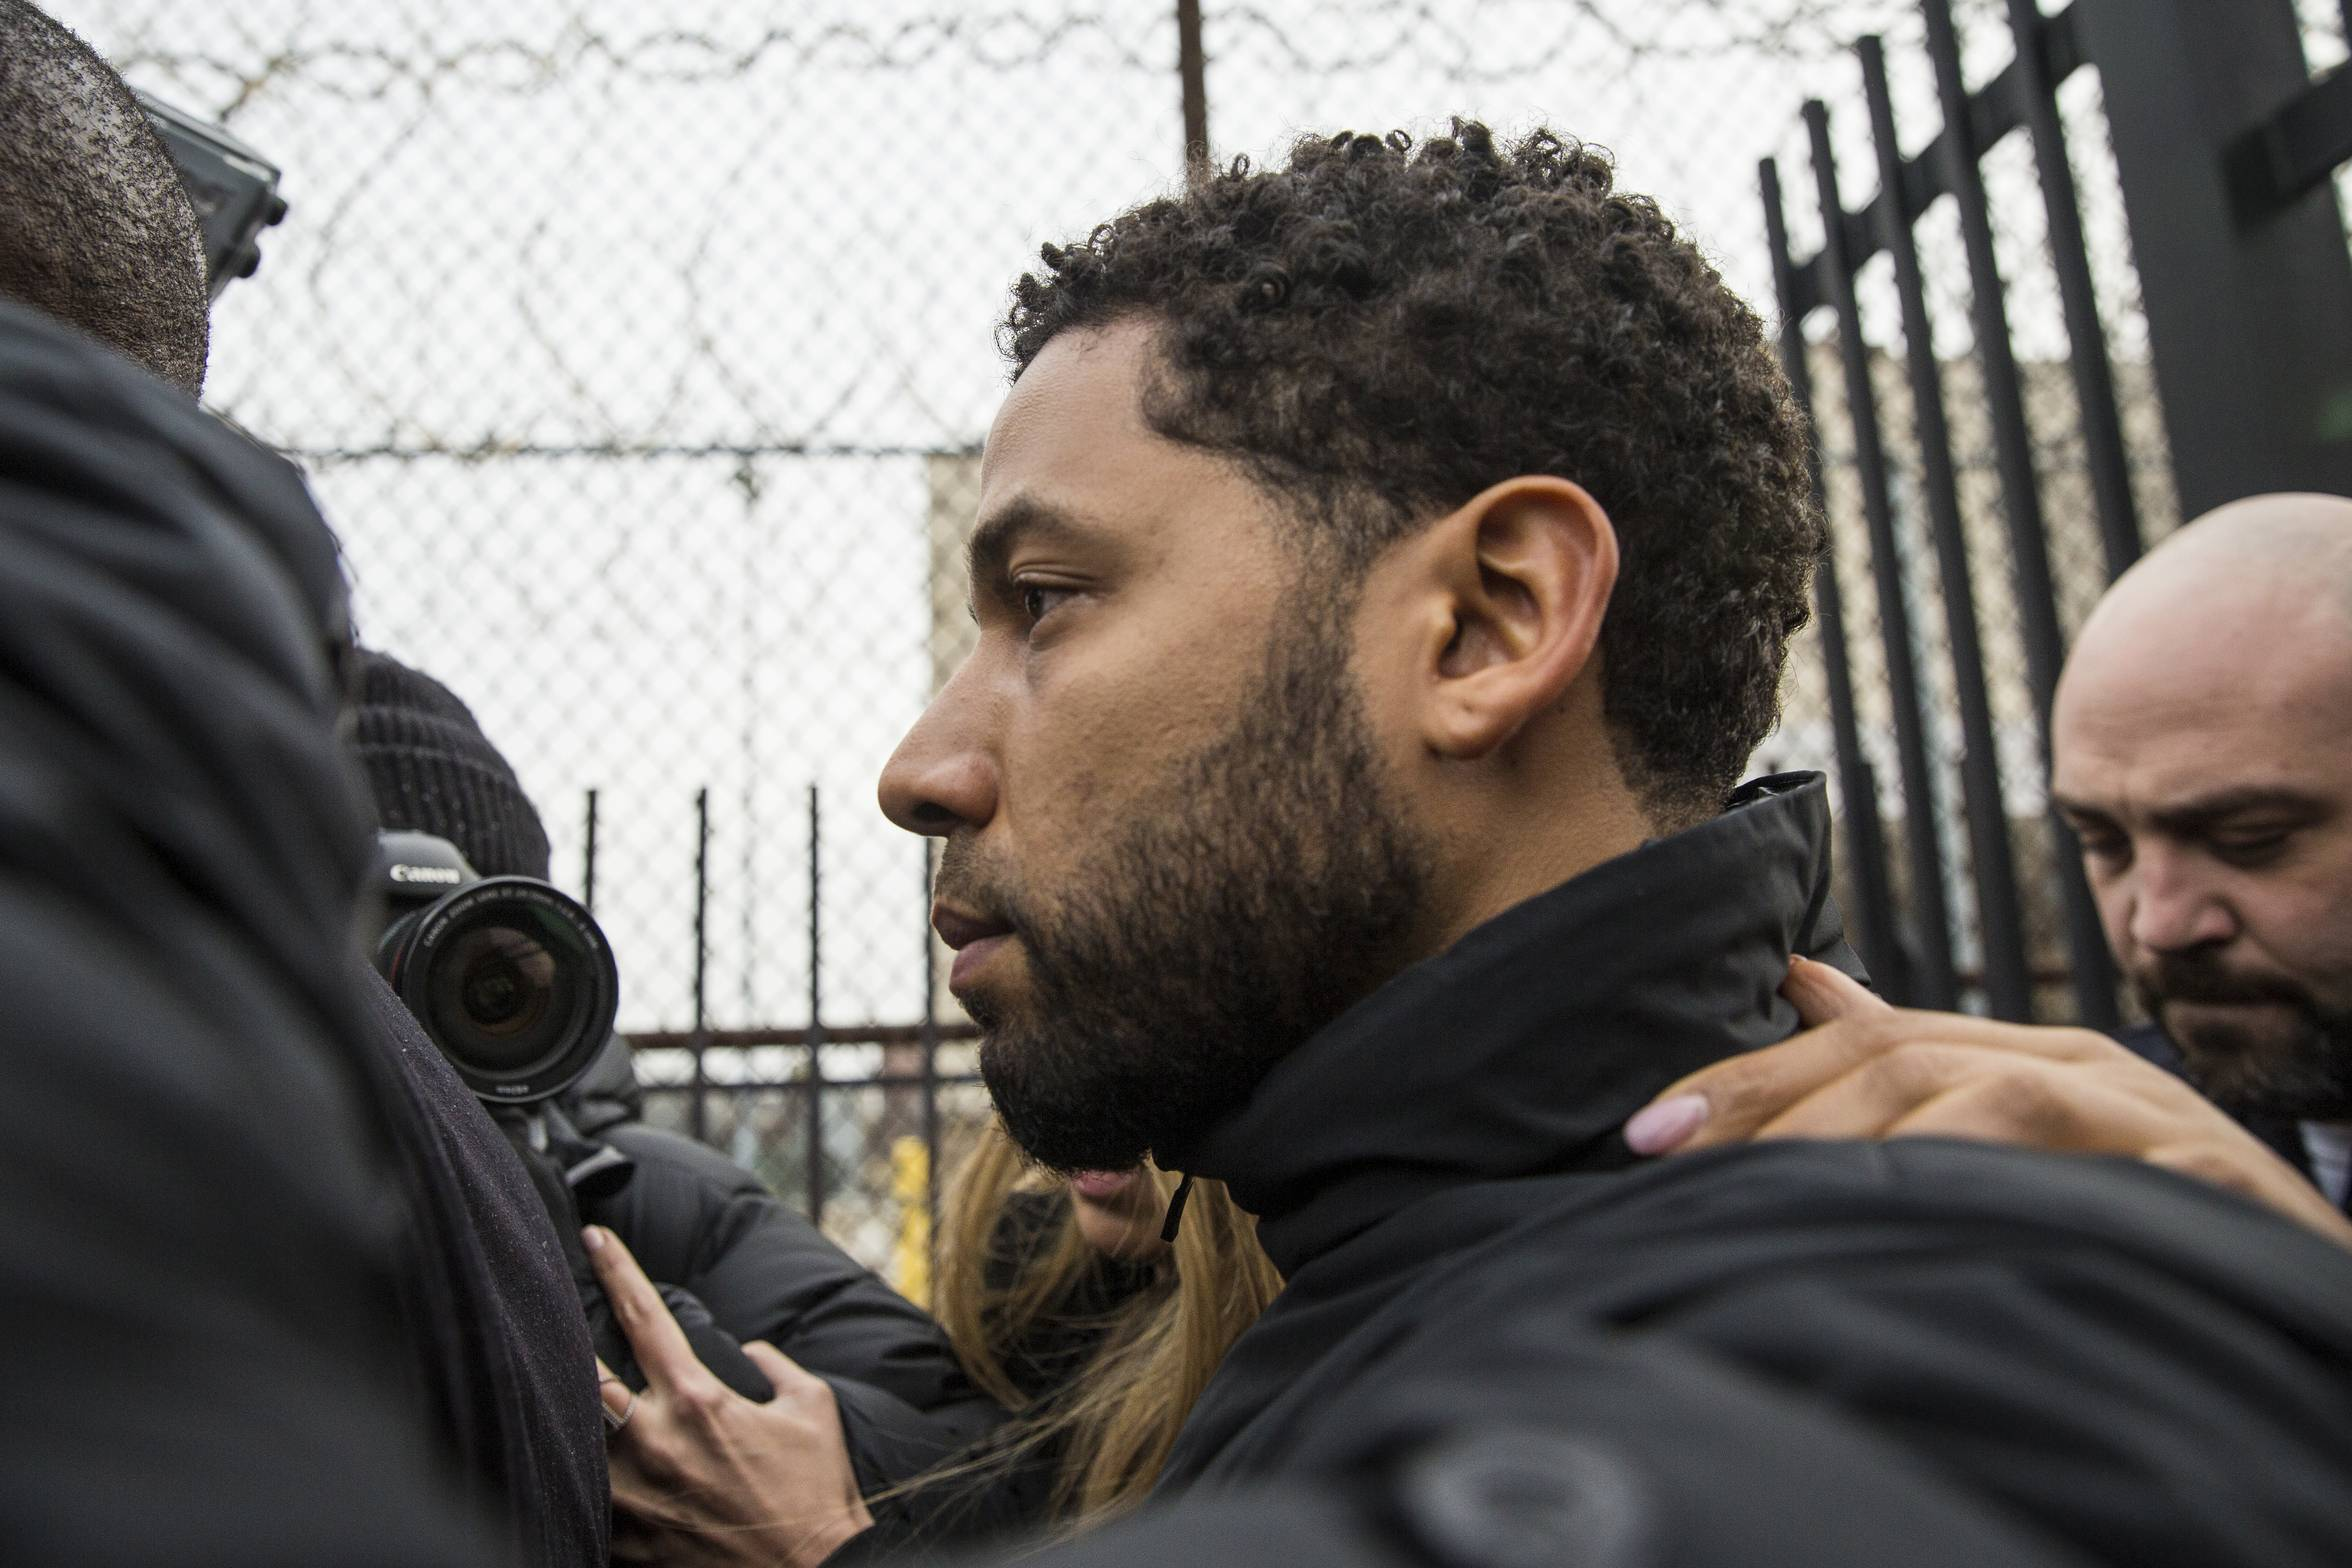 """Empire"" actor Jussie Smollett leaves Cook County jail Thursday following his release in Chicago. Smollett was charged with disorderly conduct and filling a false police report when he said he was attacked in downtown Chicago by two men who hurled racist and anti-gay slurs and looped a rope around his neck, a police official said."